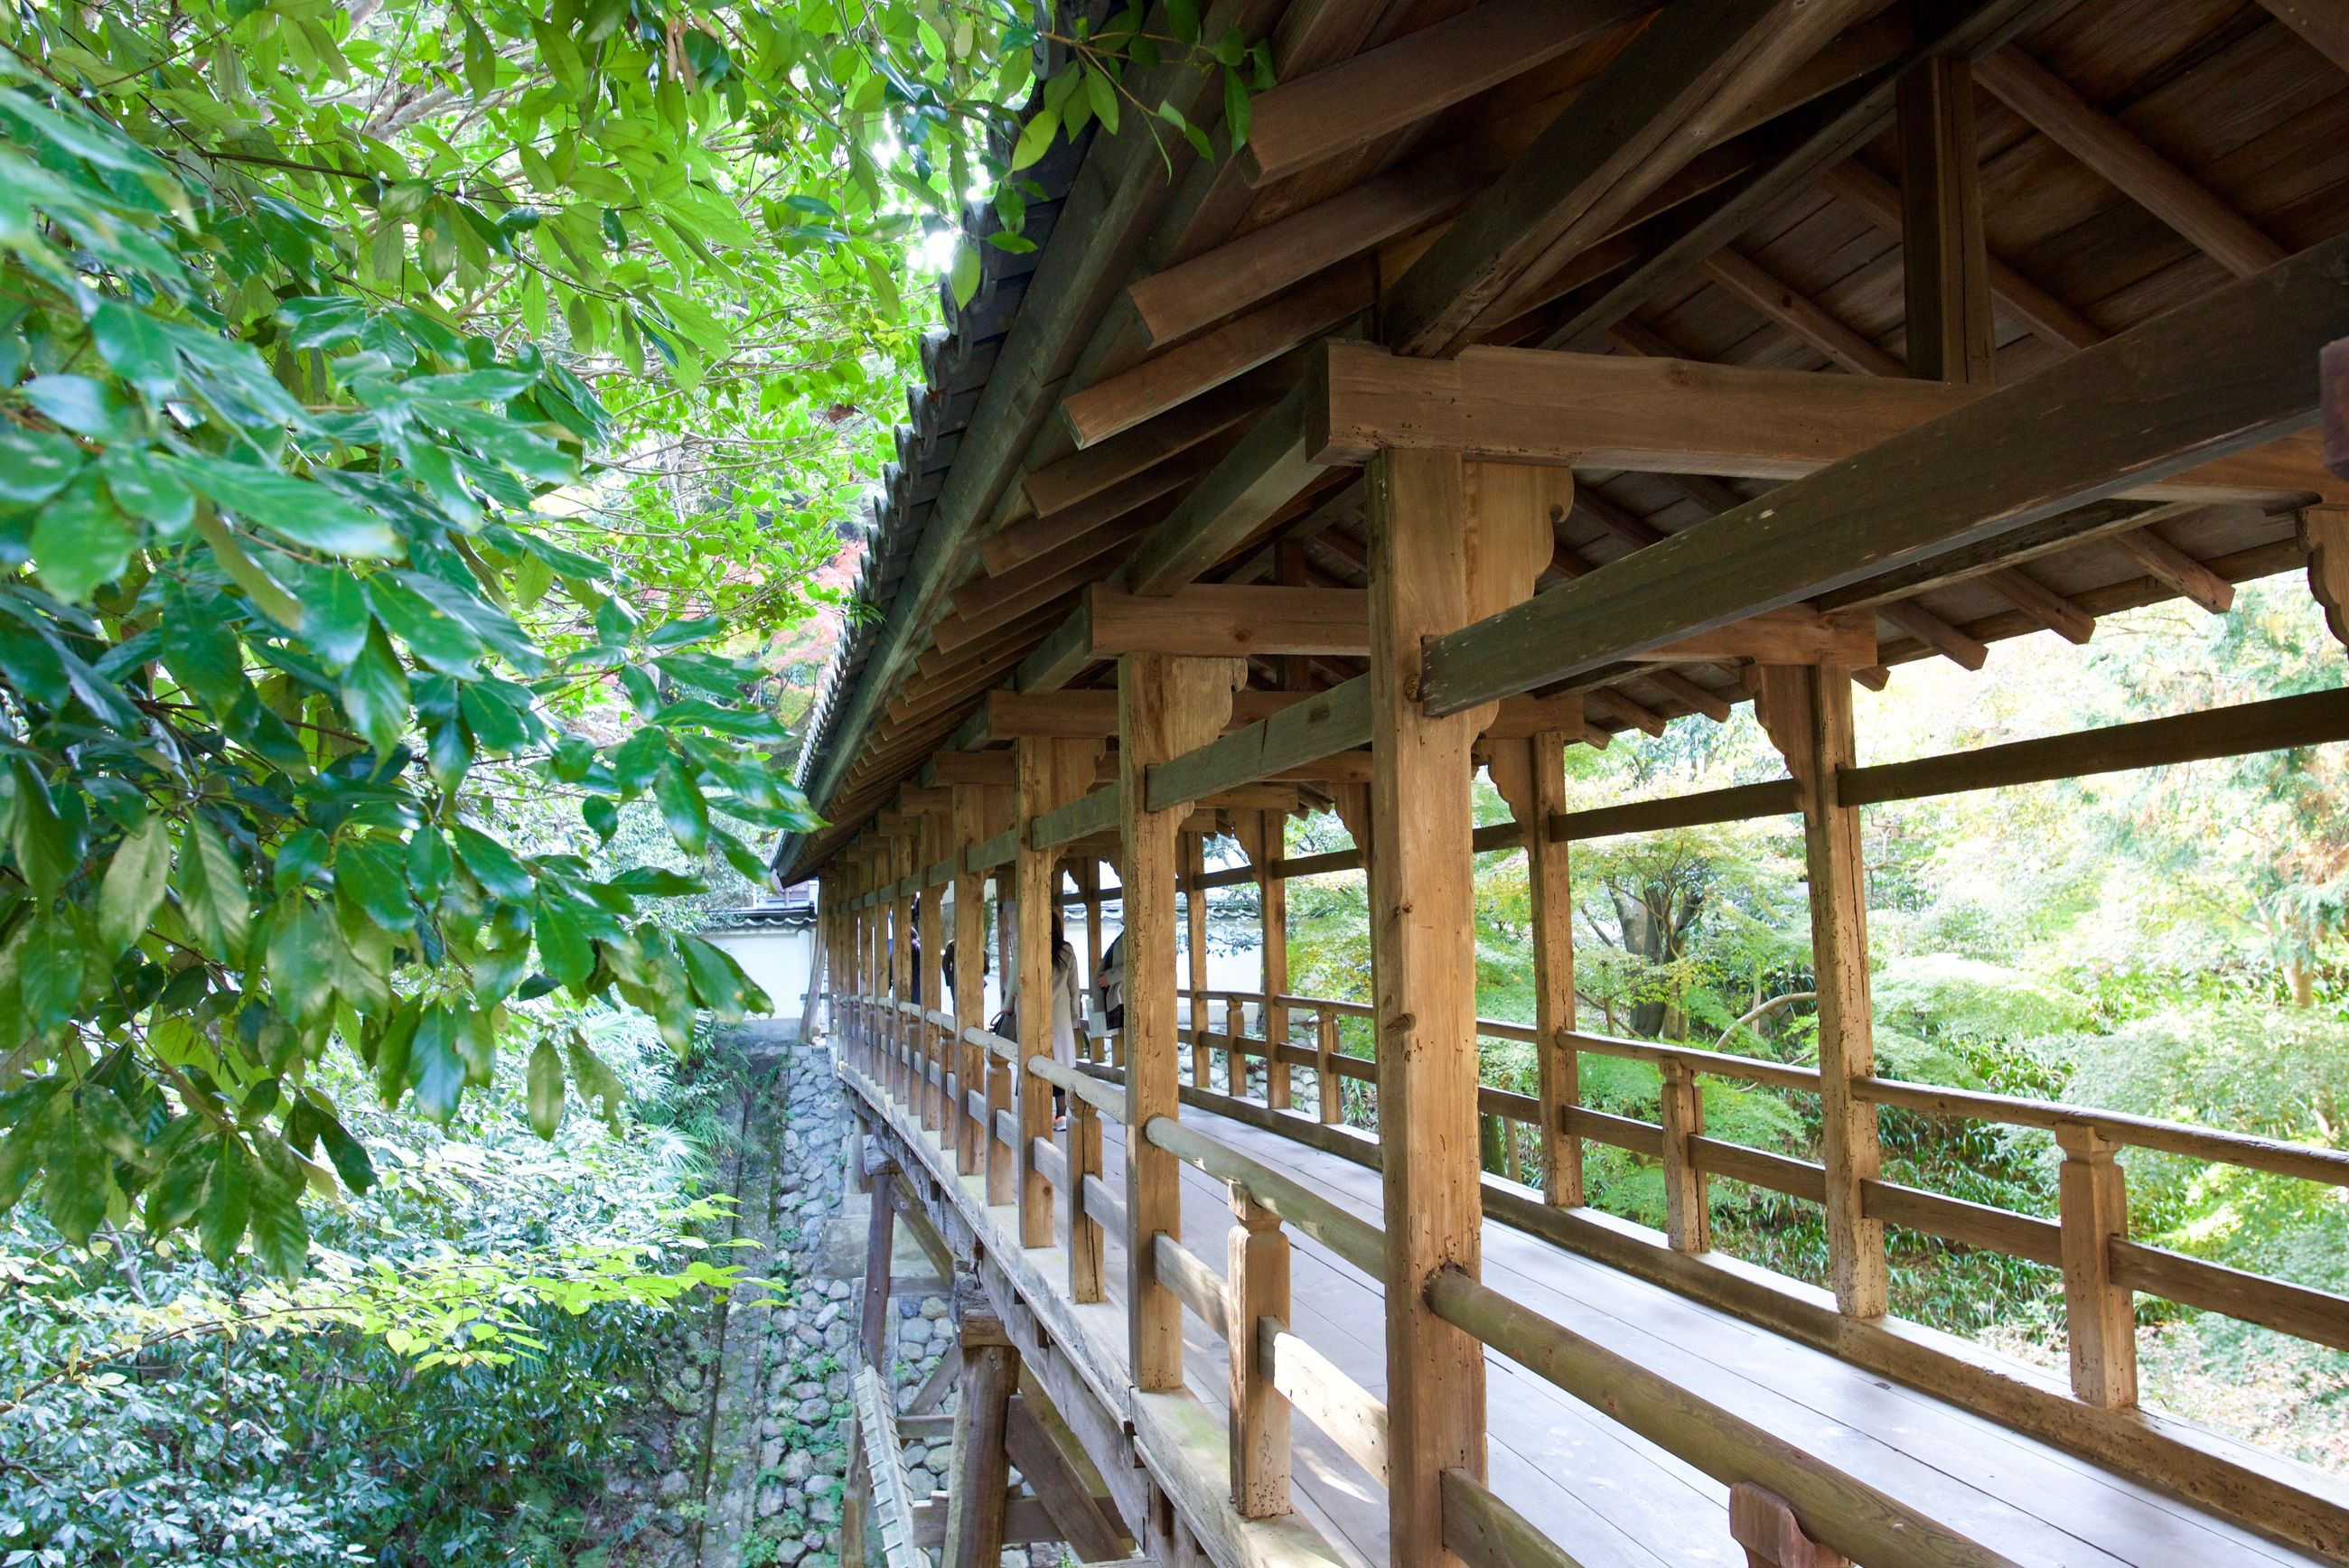 architecture, built structure, tree, wood - material, plant, day, no people, nature, outdoors, railing, forest, land, building exterior, growth, gazebo, sunlight, roof, green color, architectural column